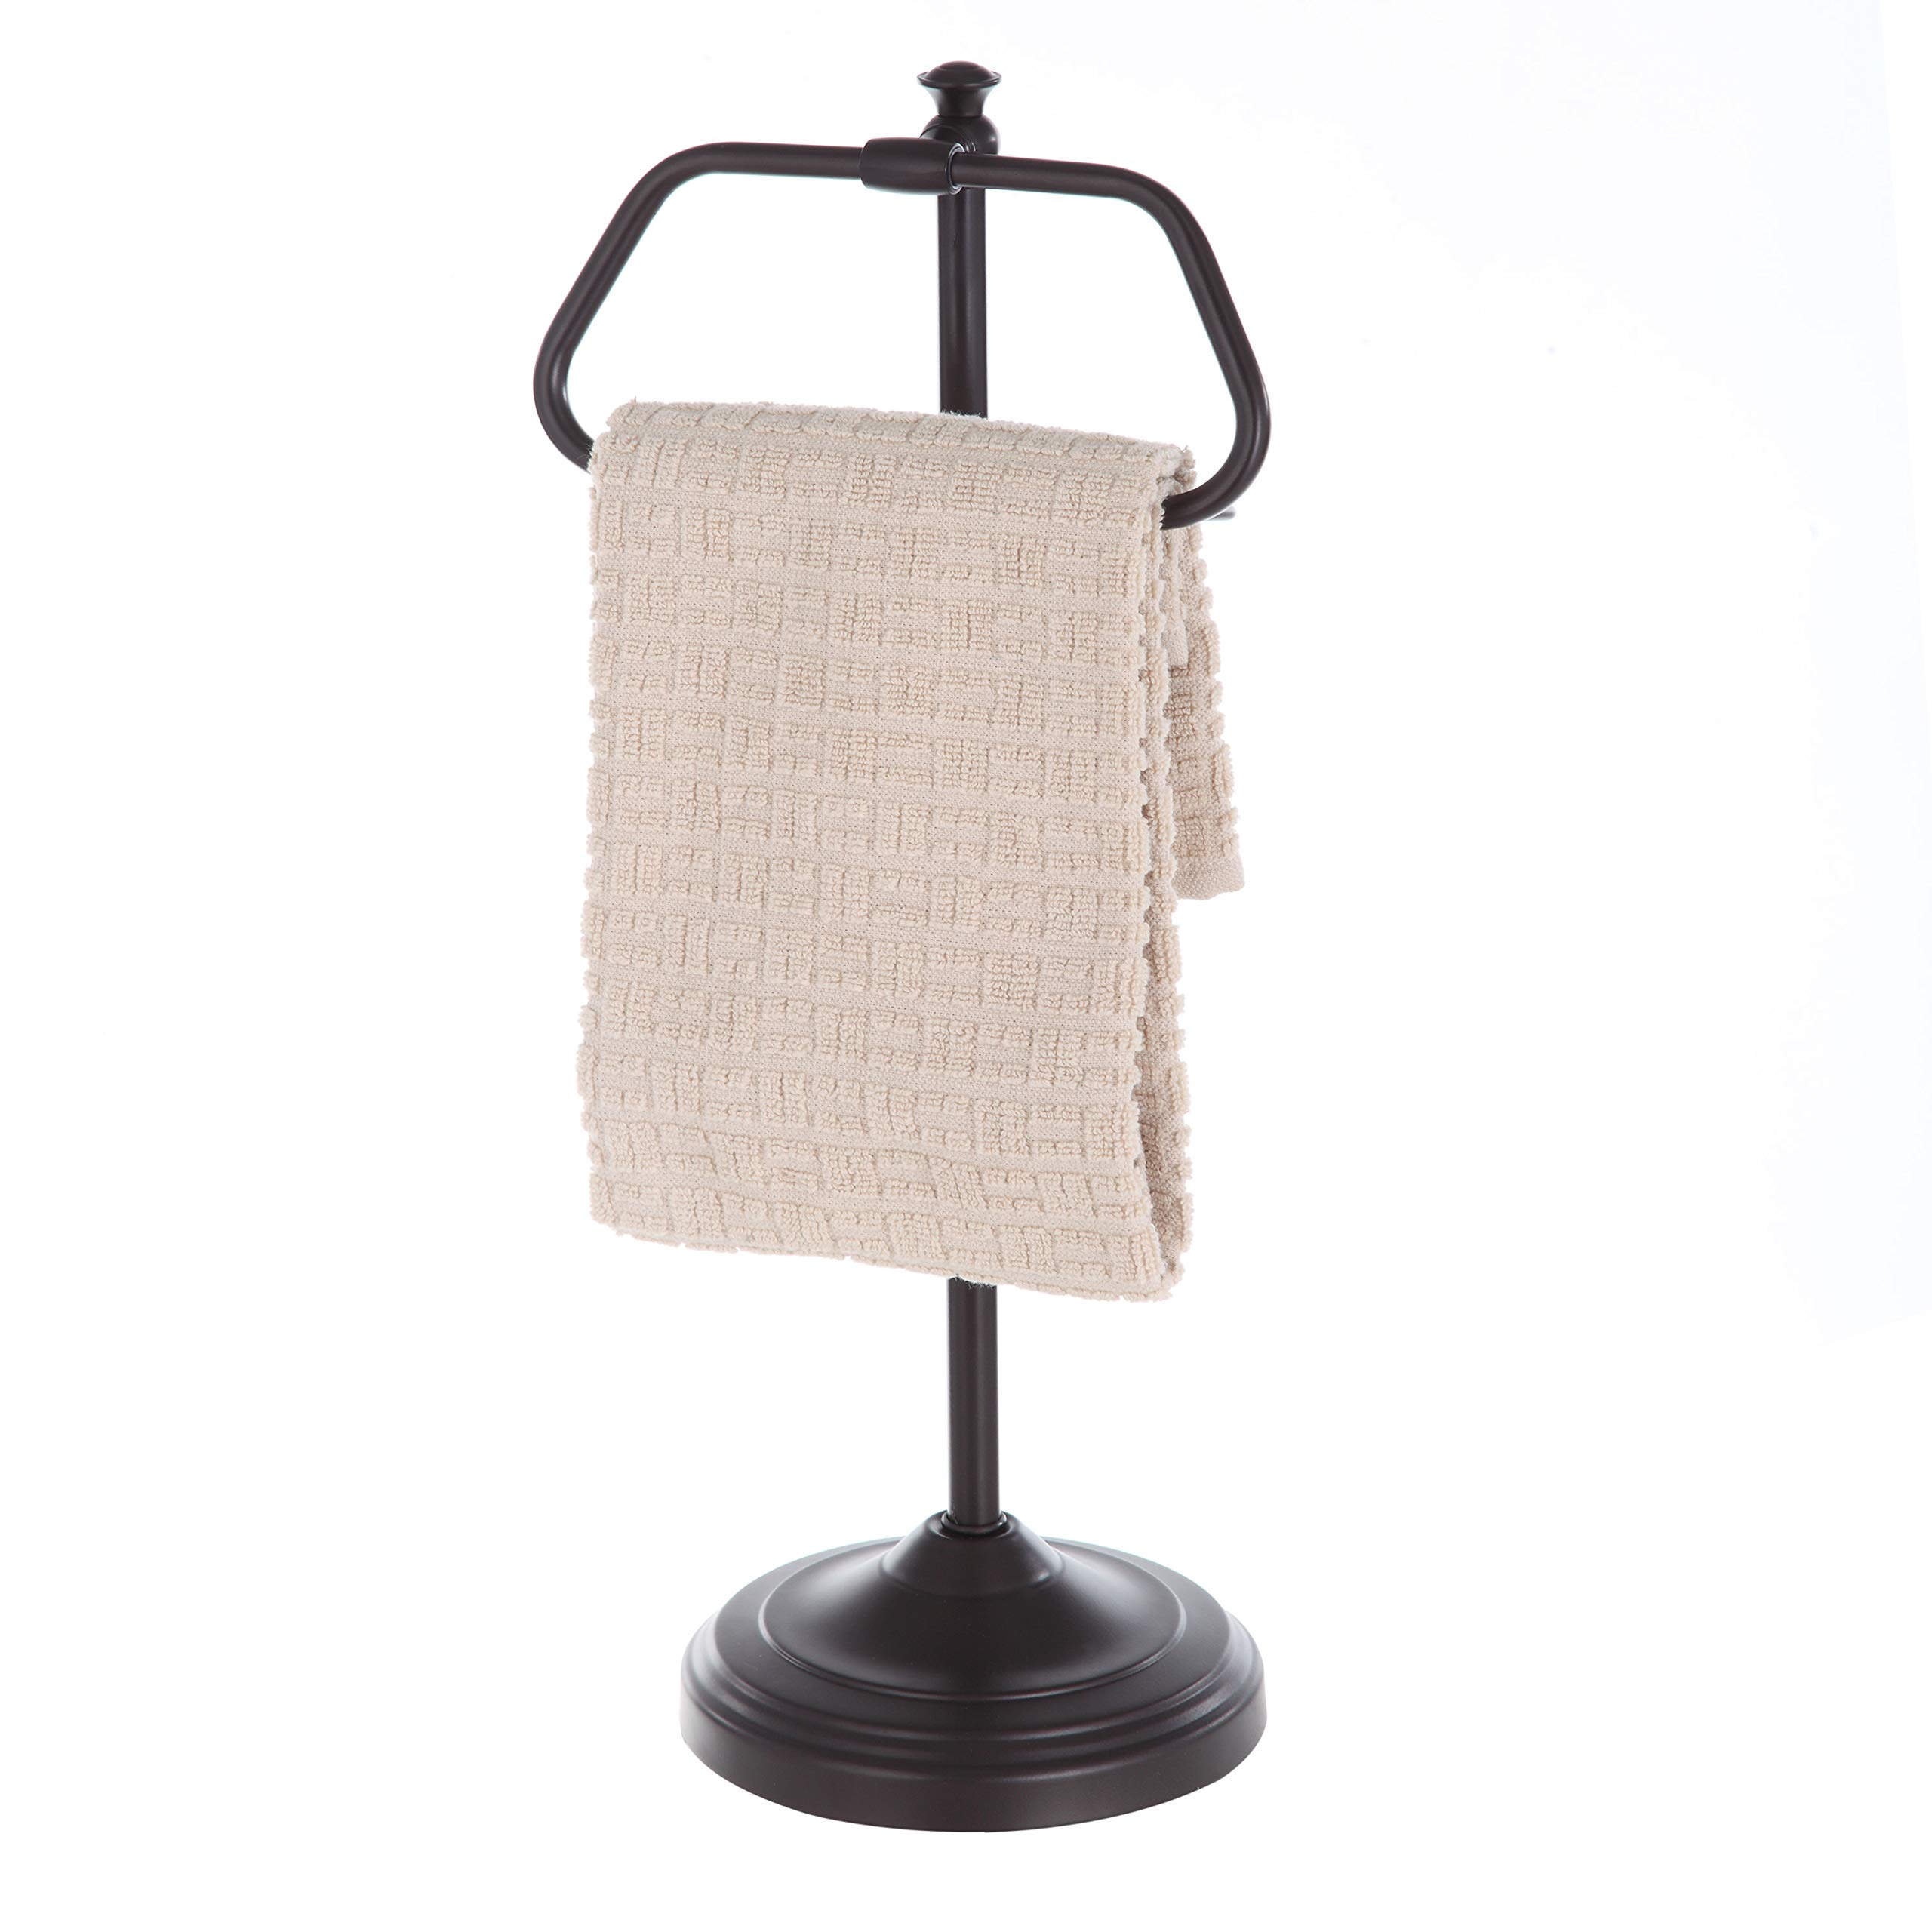 Better Homes and Garden Hand Towel Holder - Oil Rubbed Bronze